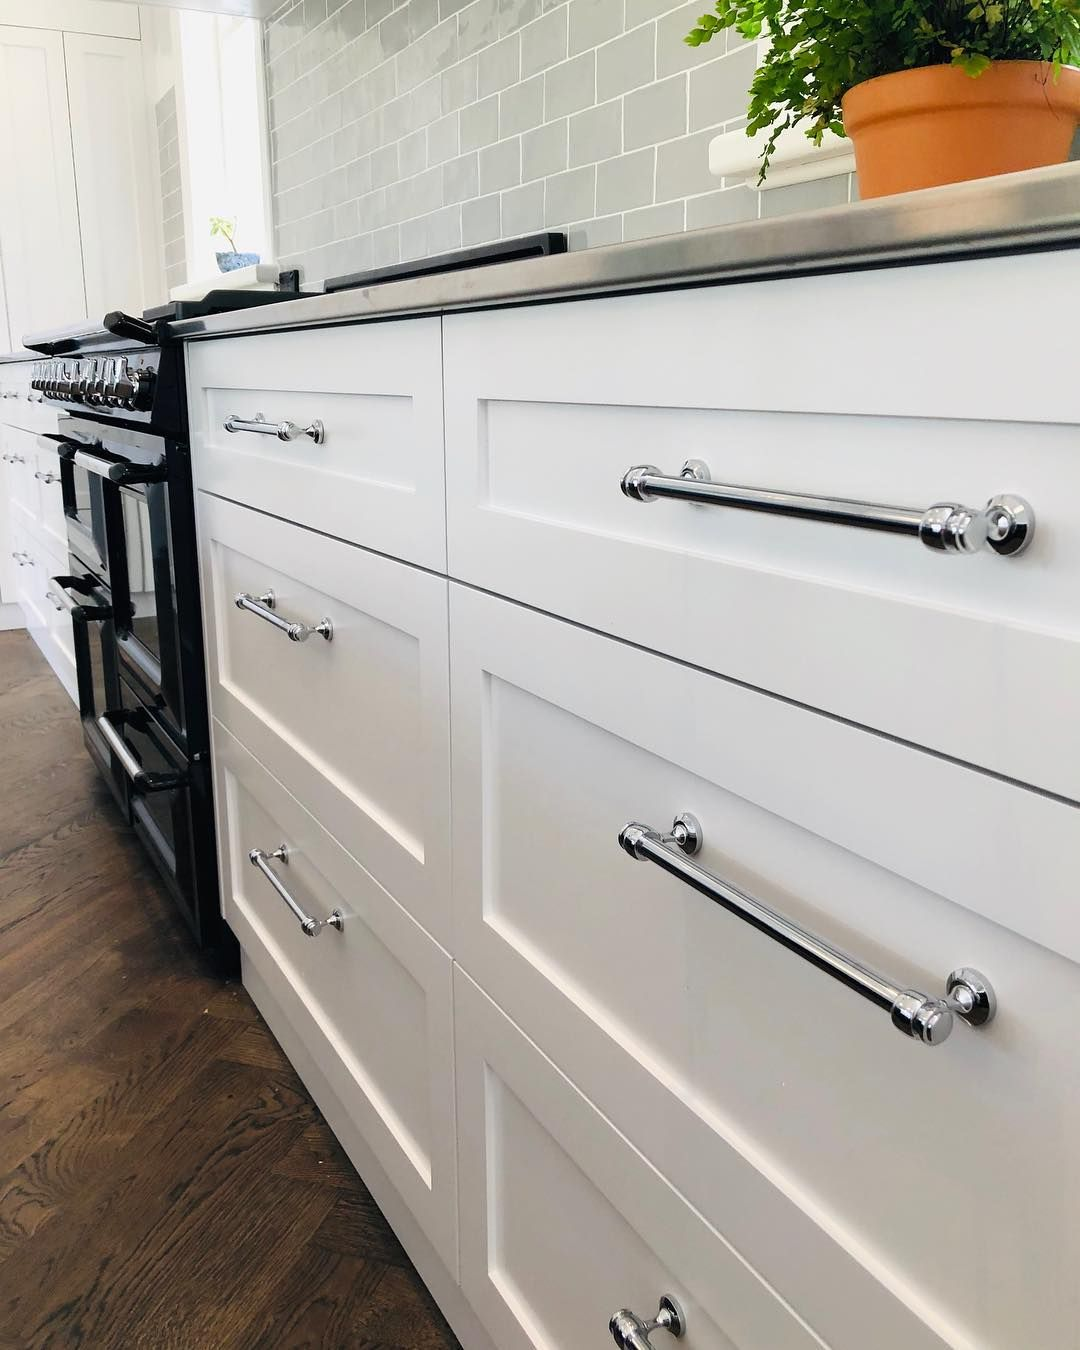 New Mayfair Kitchen Handles In Chrome On Display In This Stunning Kitchen Kitchen Handles Black Kitchen Handles Cabinet Handles